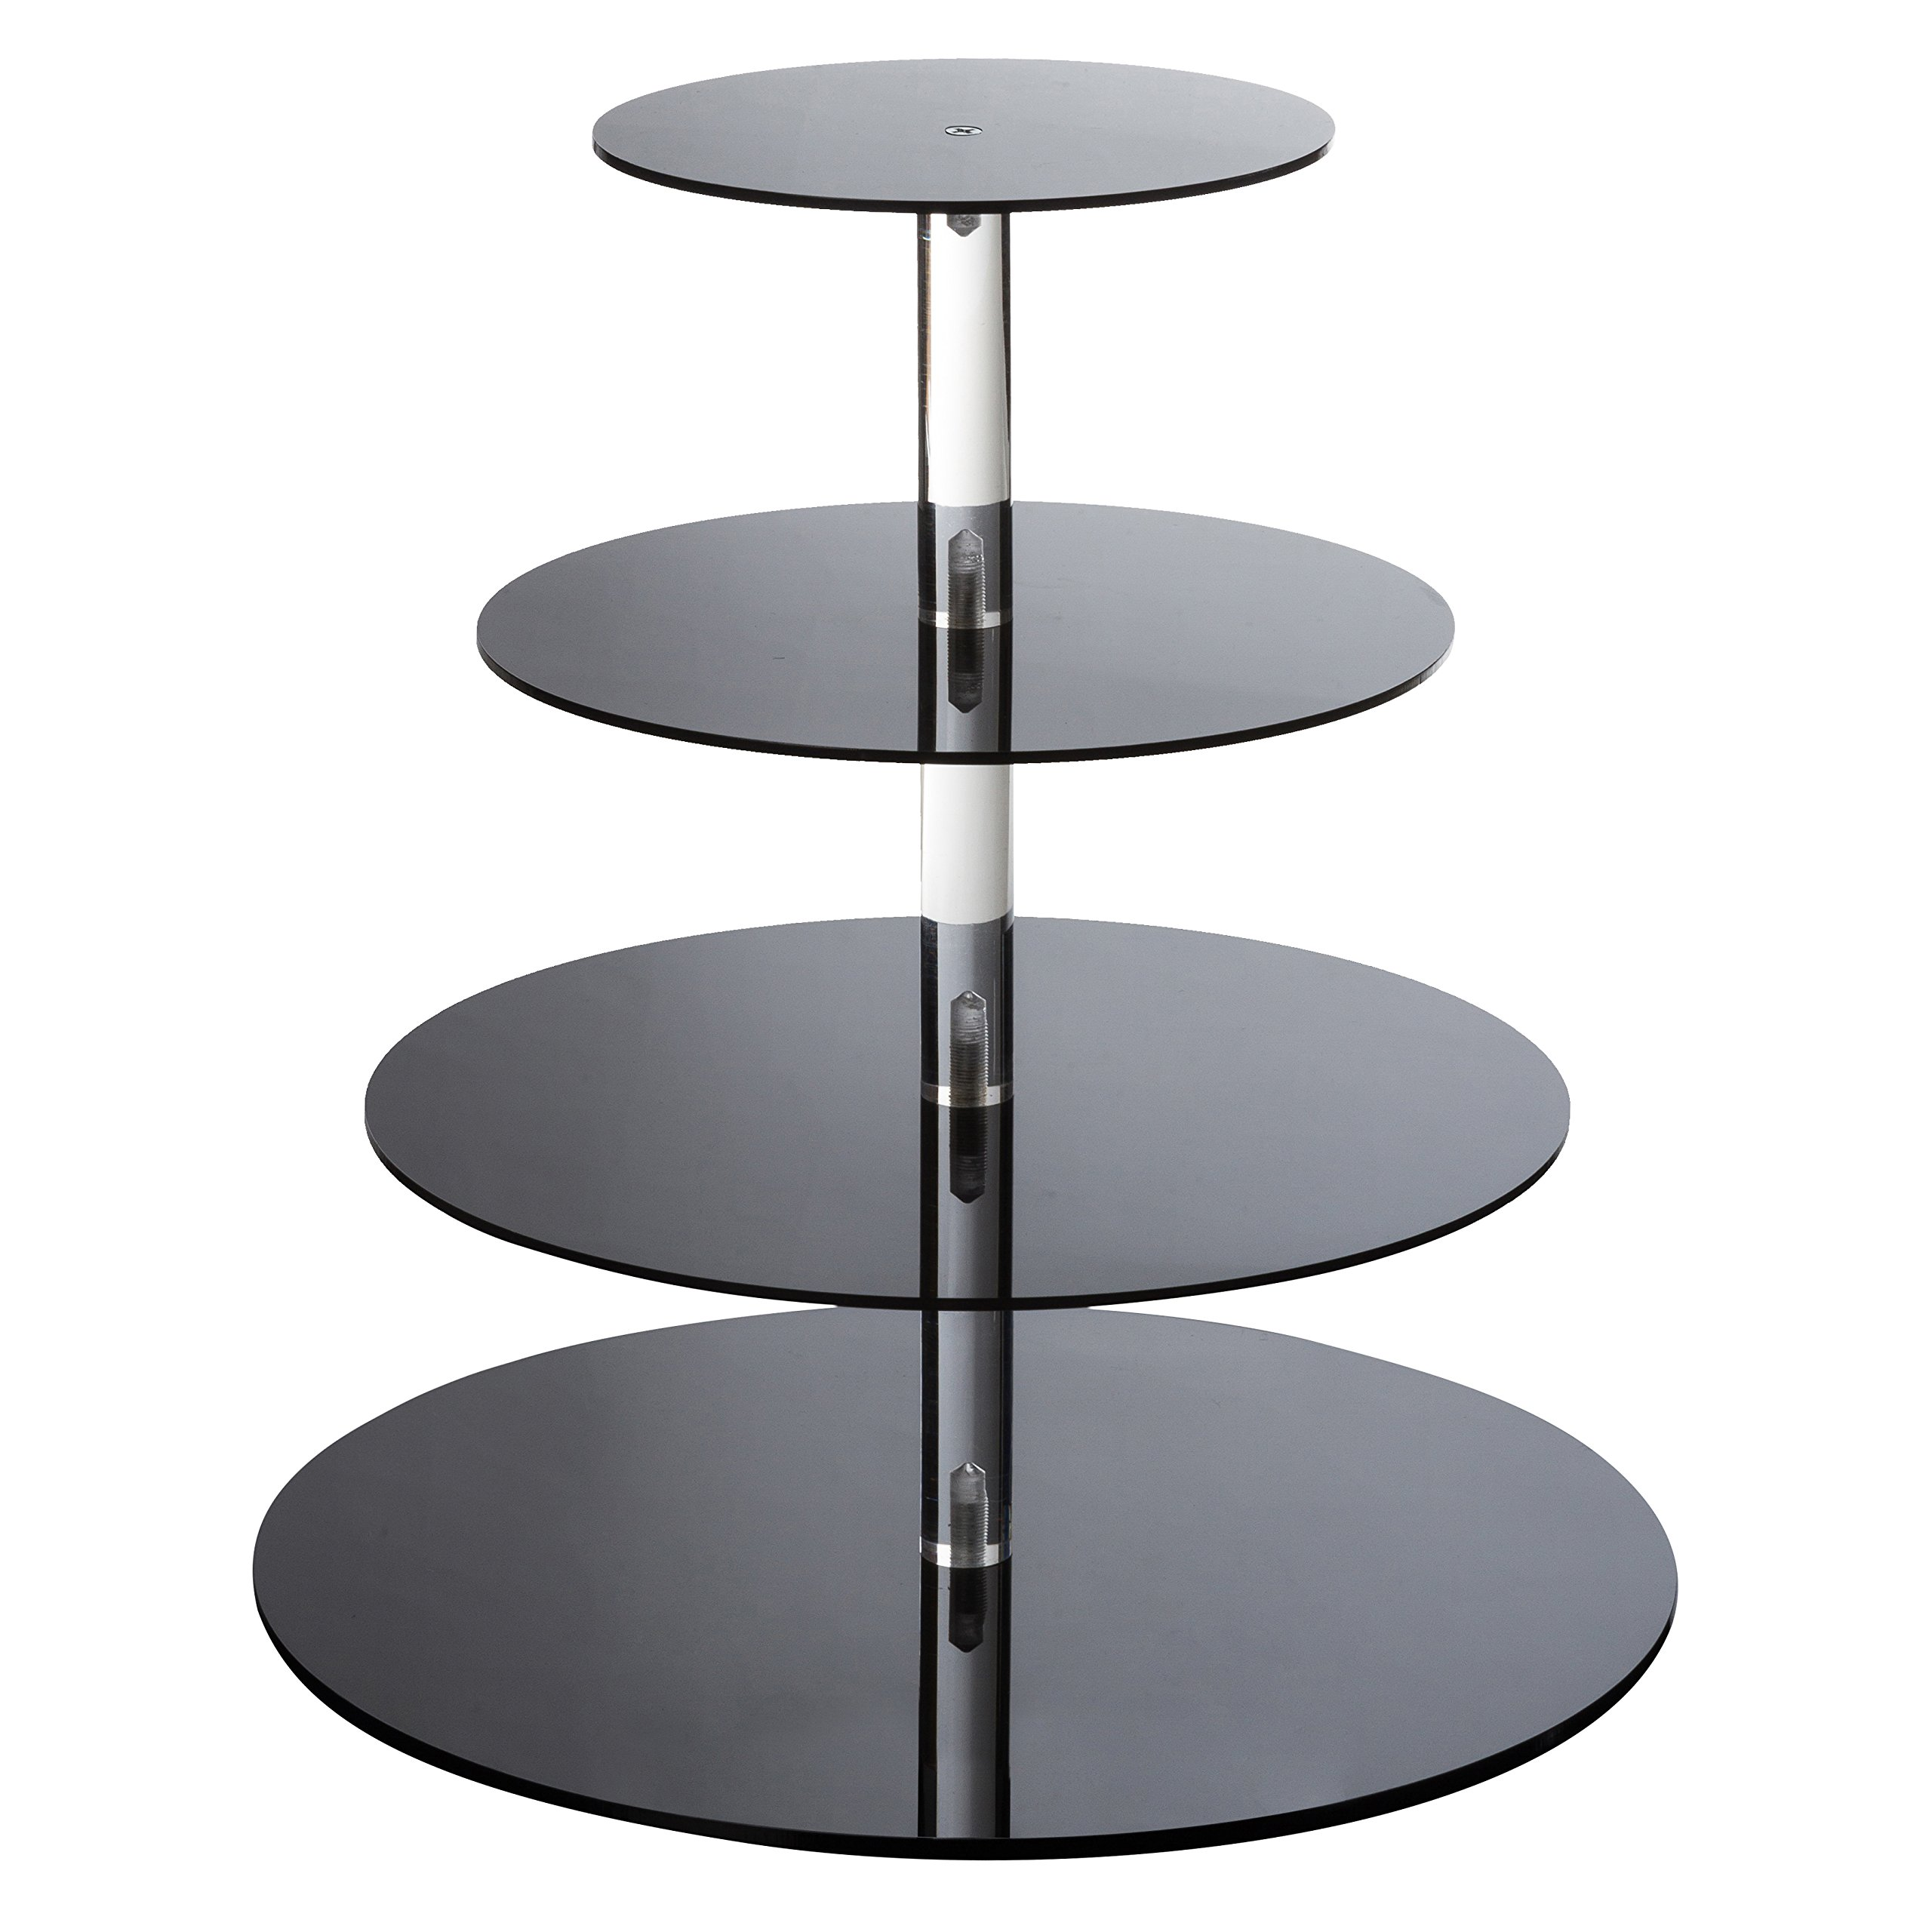 SinoAcrylic Cupcake Stand - 4 Tiers Round Cupcake Tower - Tiered Serving Dessert Cake Holder - Unique Black Exquisite Plate - Perfect for Wedding, Birthday, Party, Baby Shower and Xmas